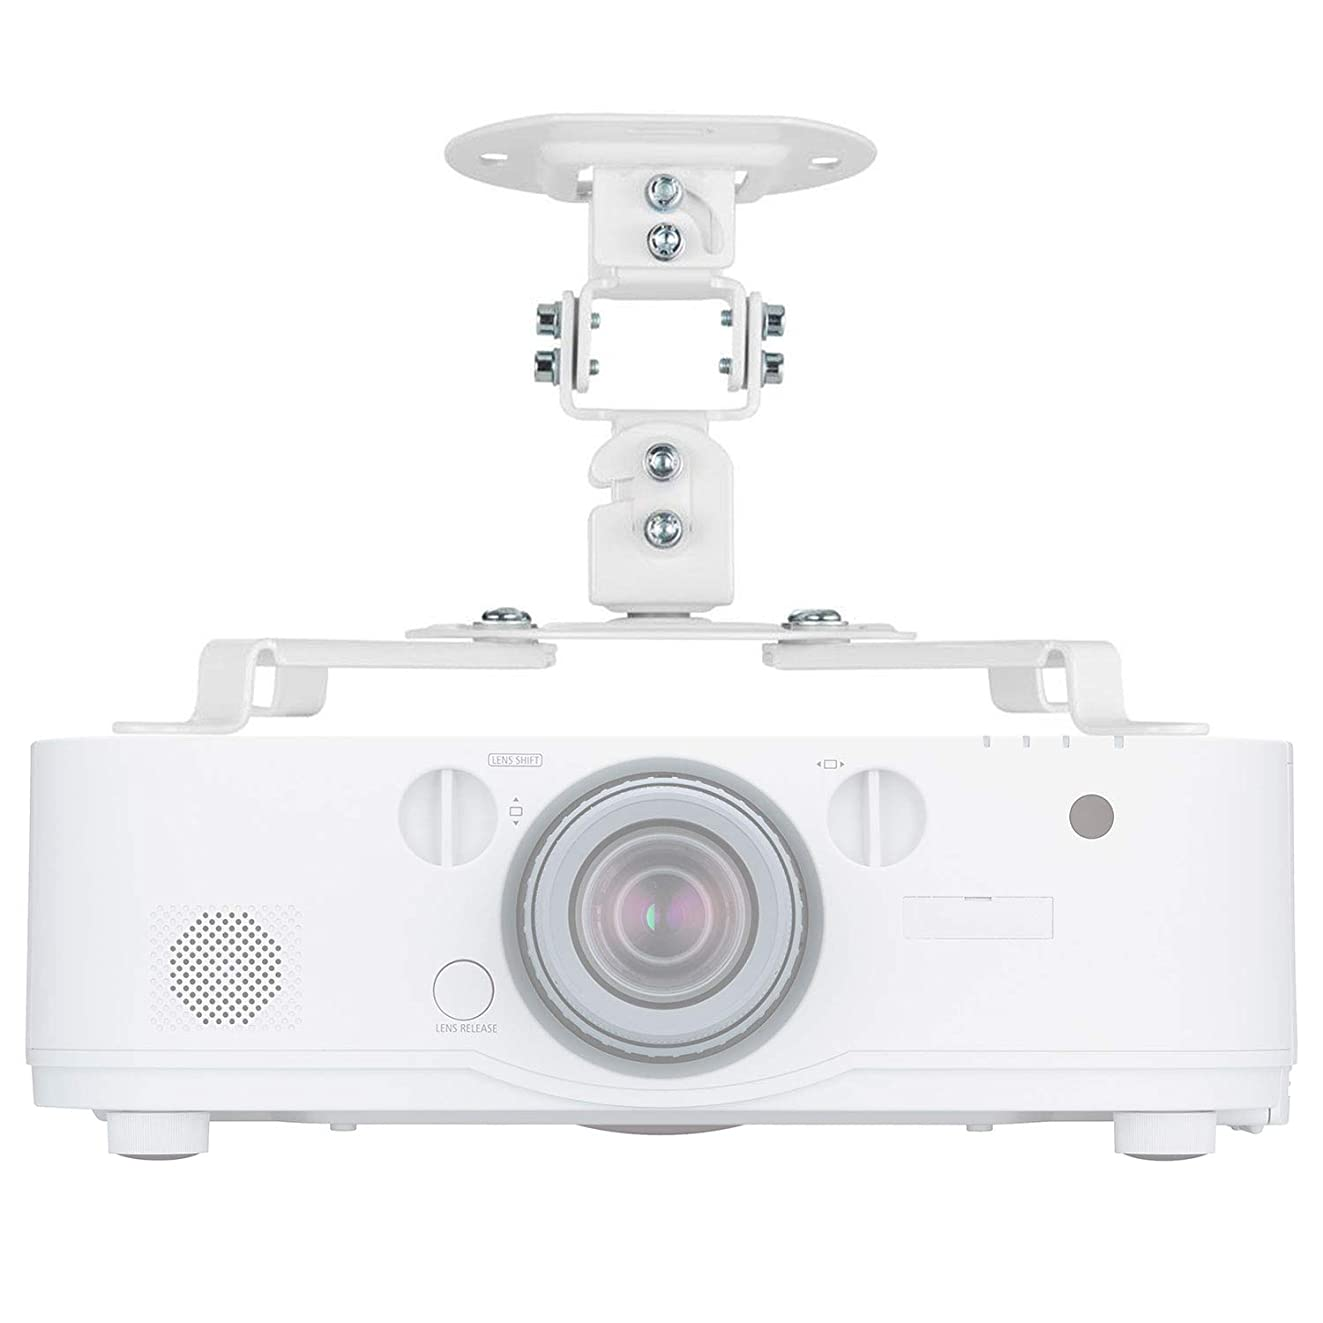 Universal Projector Mount Bracket Low Profile Multiple Adjustment Ceiling , Hold up to 30 lbs. (PM-002-WHT), White